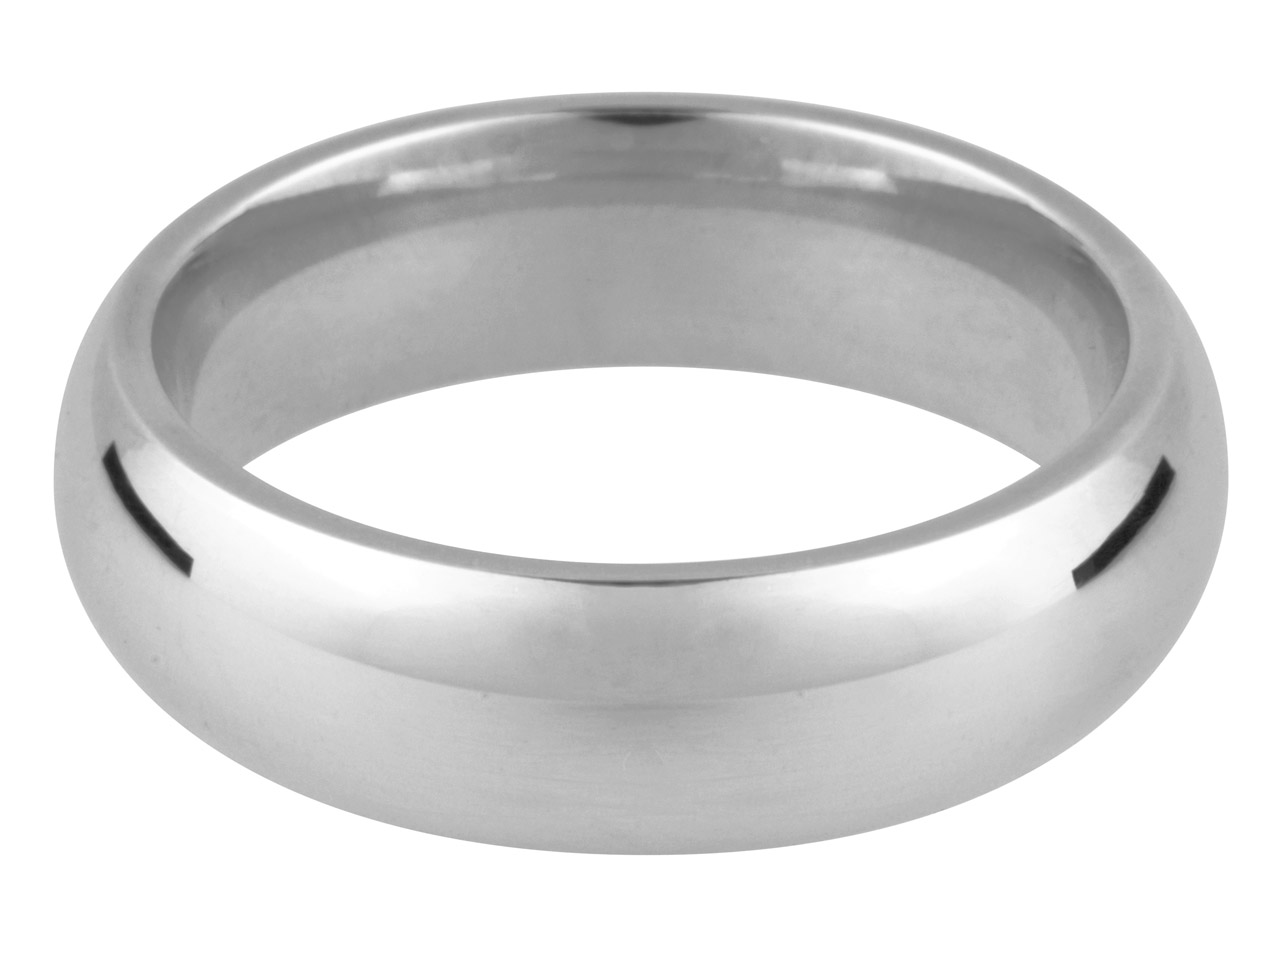 18ct White Court Wedding Ring 4.0mm X 5.0gms Light Weight Hallmarked    Wall Thickness 1.40mm